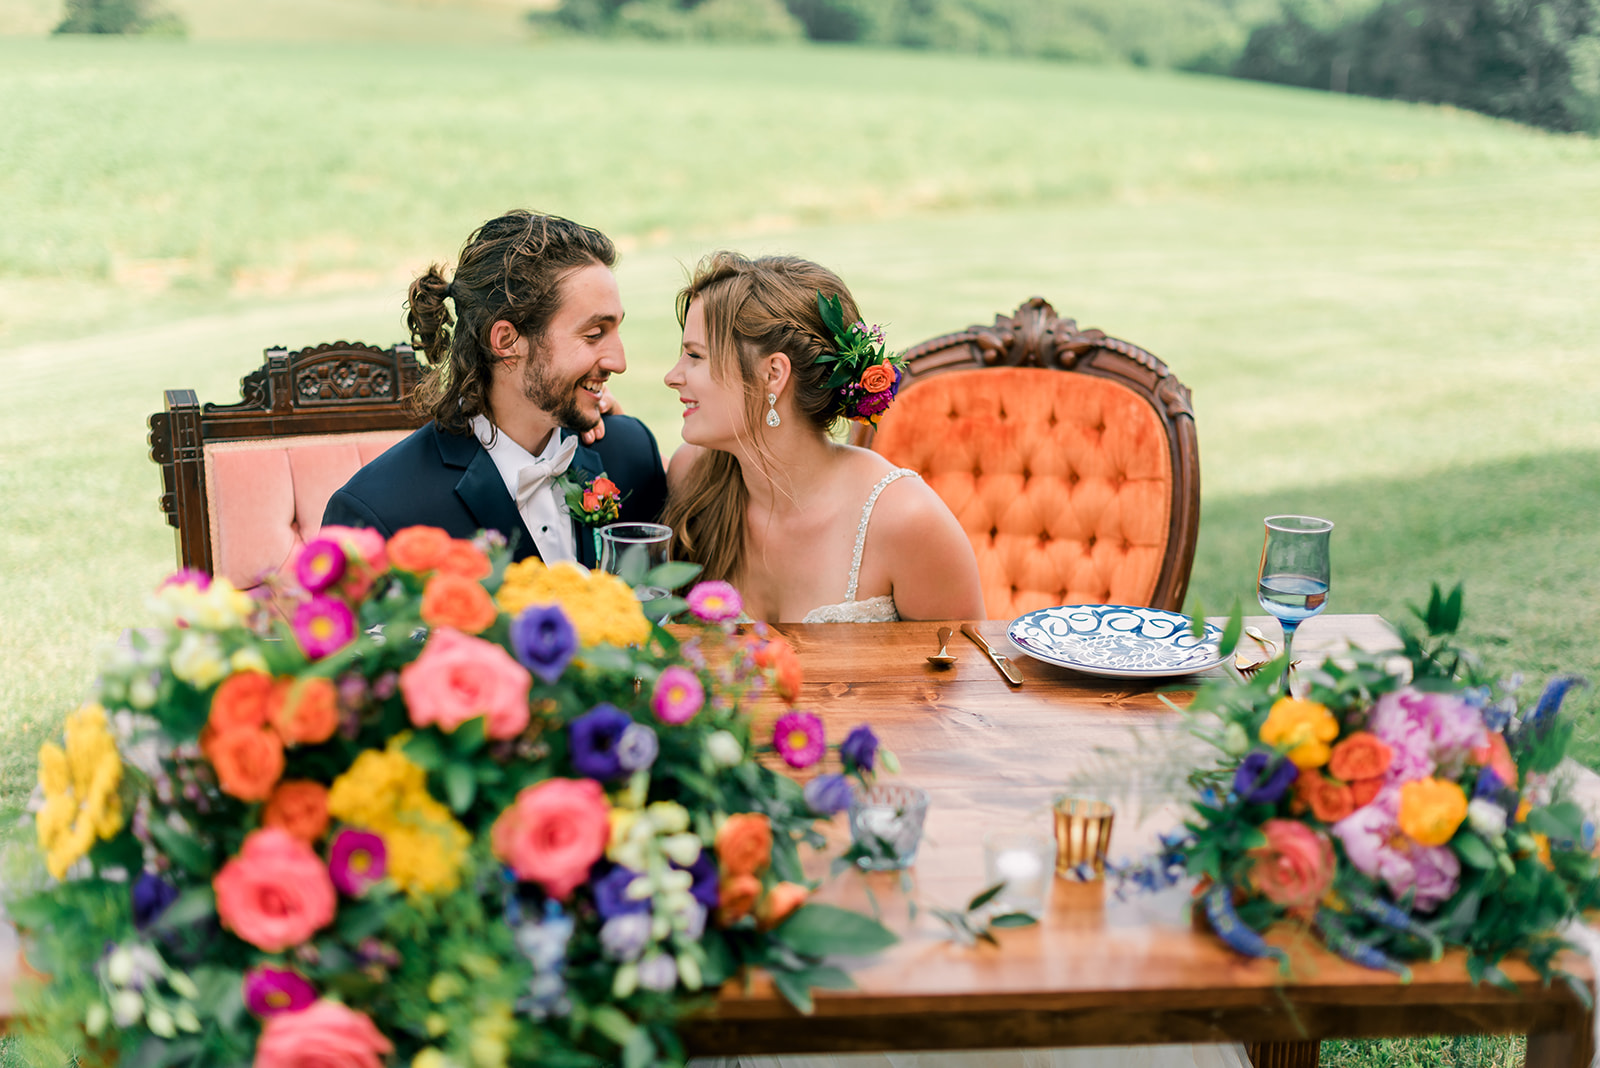 Fun & Colorful Barn Wedding Sweetheart Table at Heaven Sent Farms in Avella Dawn Derbyshire Photography  (1).jpg